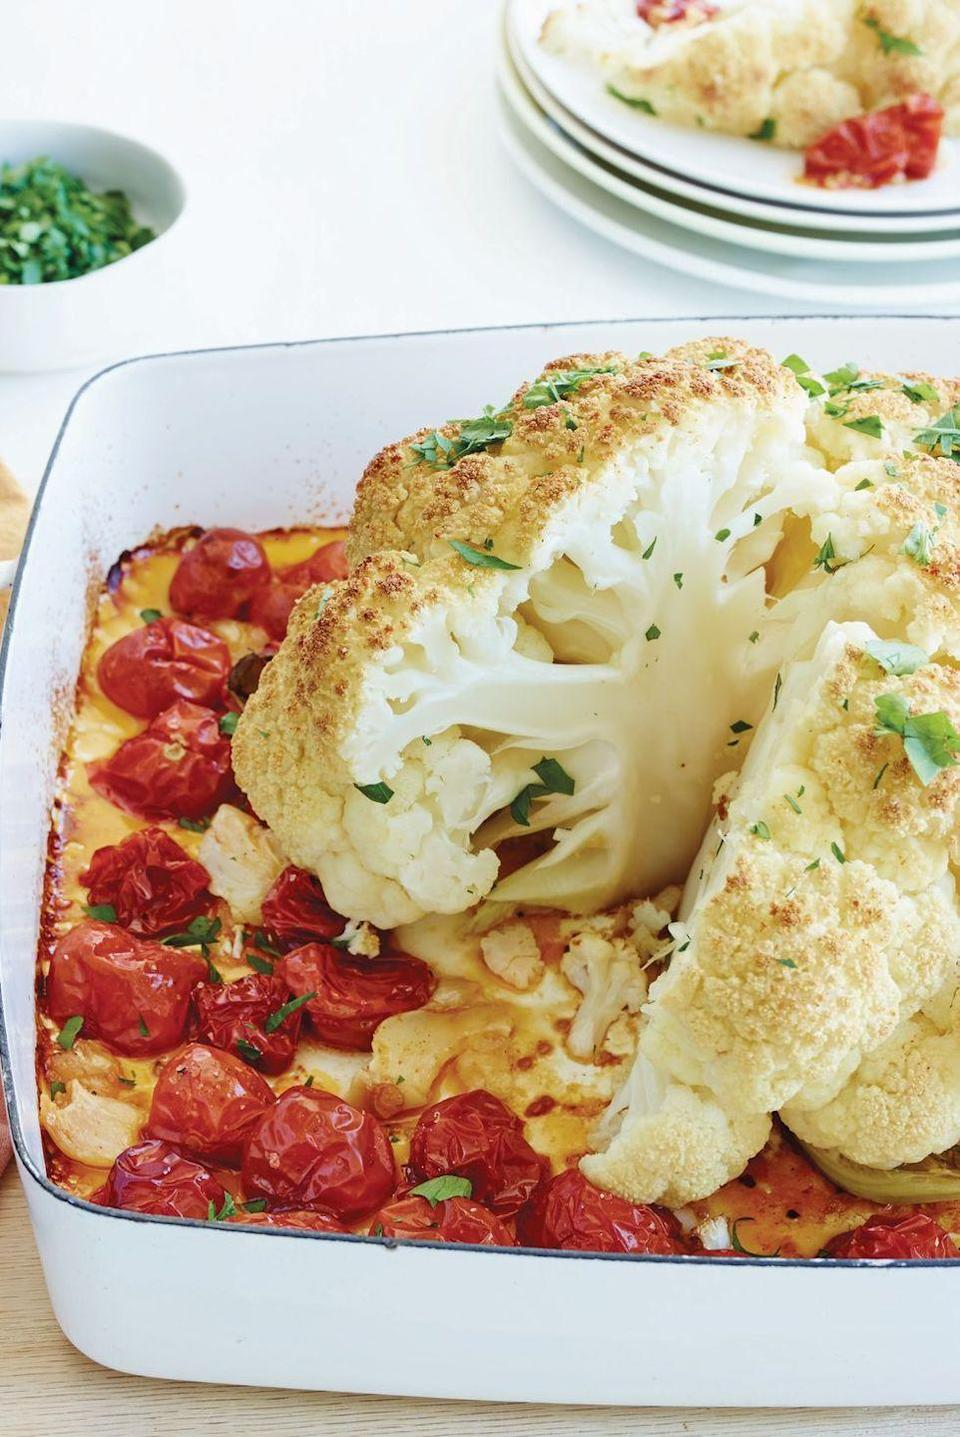 """<p>We love the drama of this <a href=""""https://www.delish.com/uk/cooking/recipes/a29695647/thanksgiving-cauliflower-recipe/"""" rel=""""nofollow noopener"""" target=""""_blank"""" data-ylk=""""slk:whole roasted cauliflower"""" class=""""link rapid-noclick-resp"""">whole roasted cauliflower</a>—the presentation, the slicing—which always brings down the house.</p><p>Get the <a href=""""https://www.delish.com/uk/cooking/recipes/a34639851/whole-roasted-cauliflower-tomatoes-and-garlic-recipe/"""" rel=""""nofollow noopener"""" target=""""_blank"""" data-ylk=""""slk:Whole Roasted Cauliflower, Tomatoes and Garlic"""" class=""""link rapid-noclick-resp"""">Whole Roasted Cauliflower, Tomatoes and Garlic</a> recipe.</p>"""